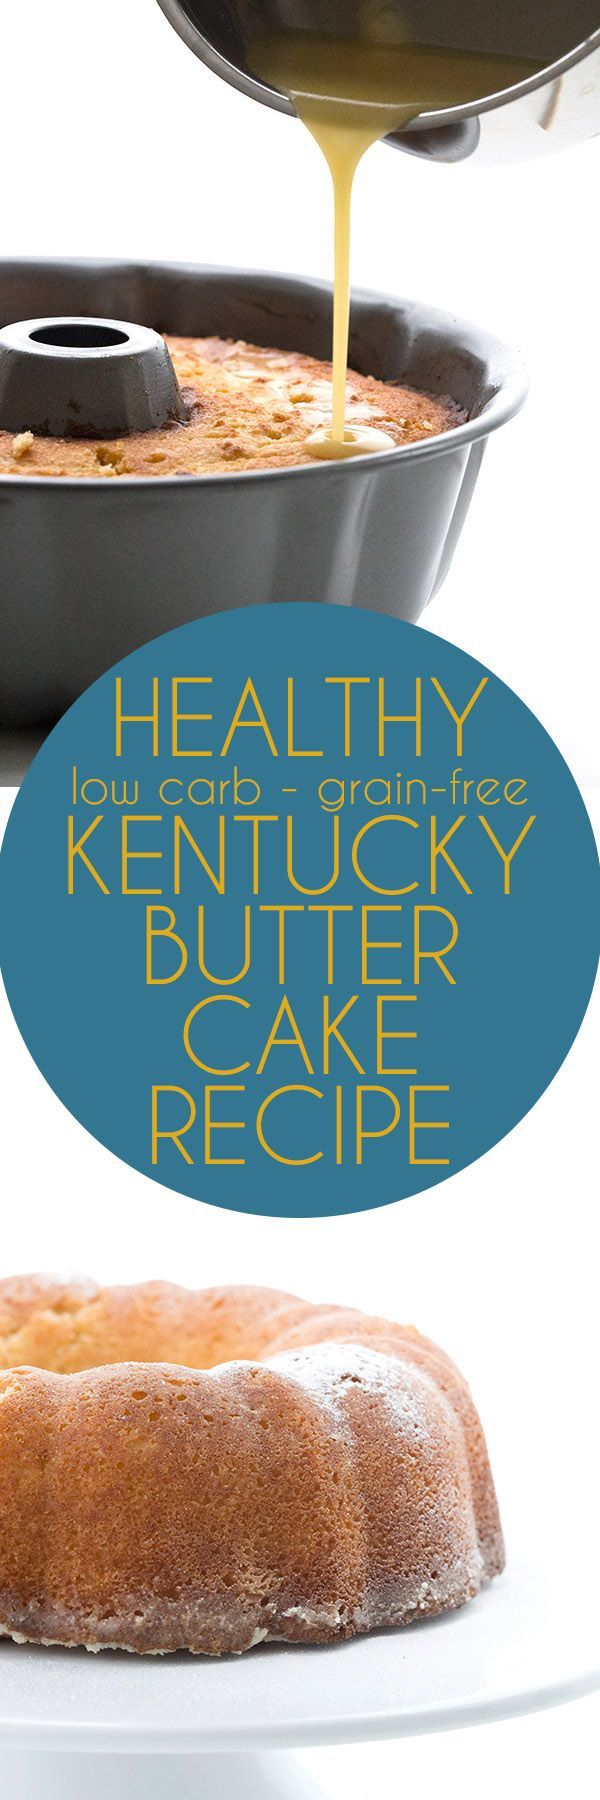 Thm Kentucky Butter Cake